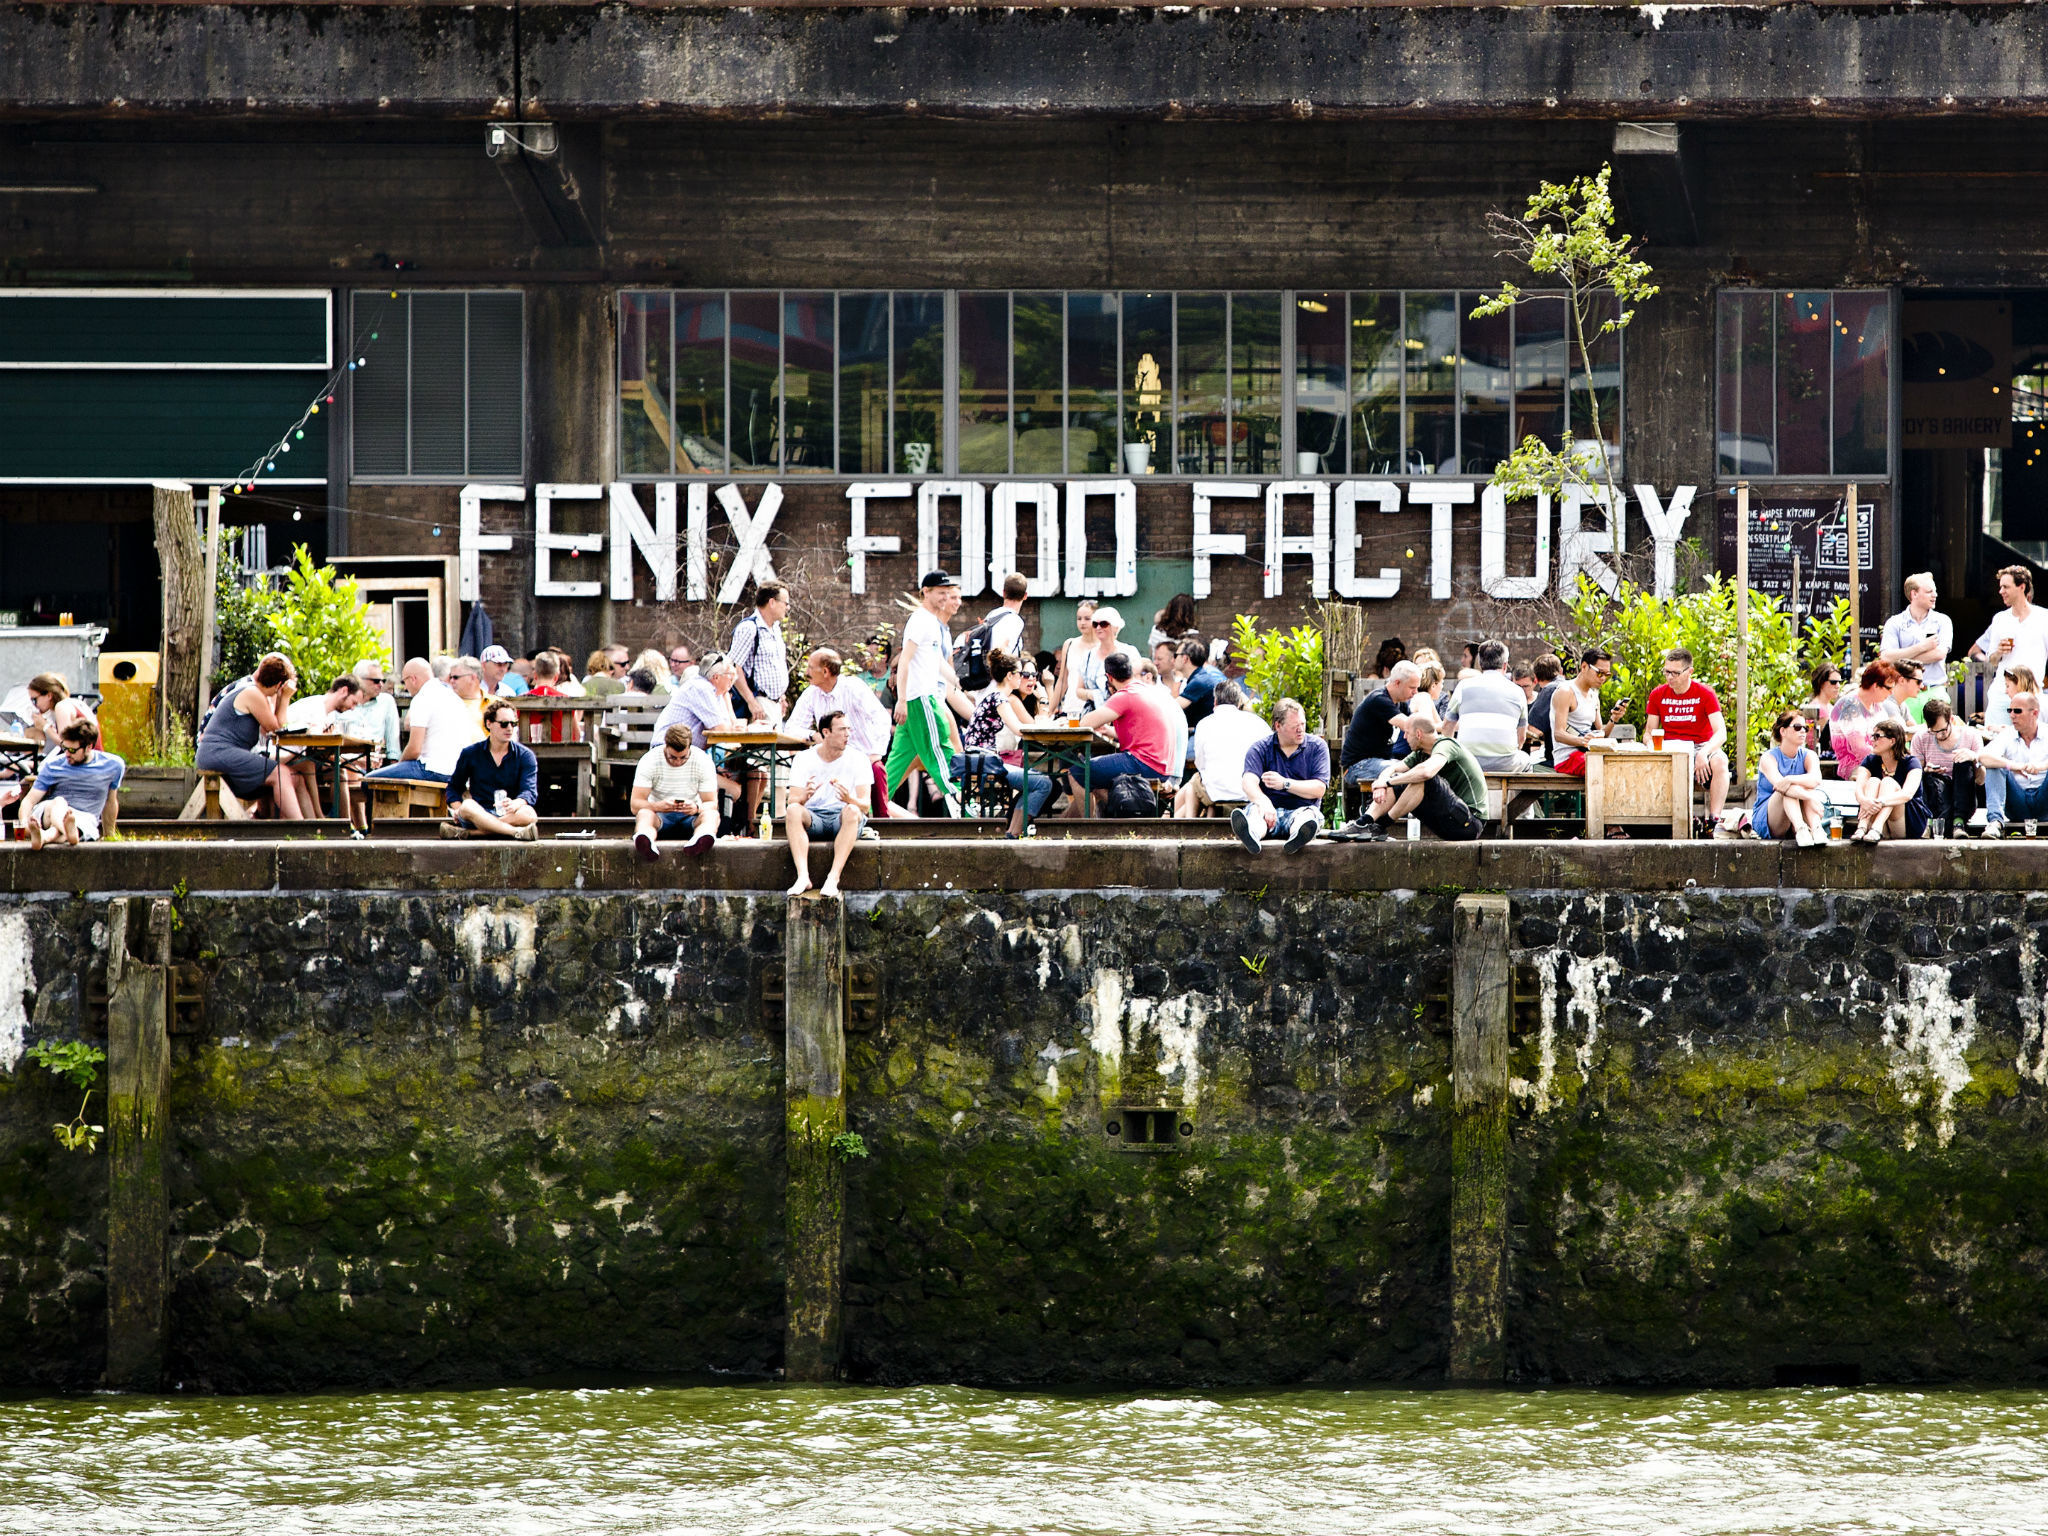 Fenix Food Factory in Katendrecht, Rotterdam's coolest neighbourhood